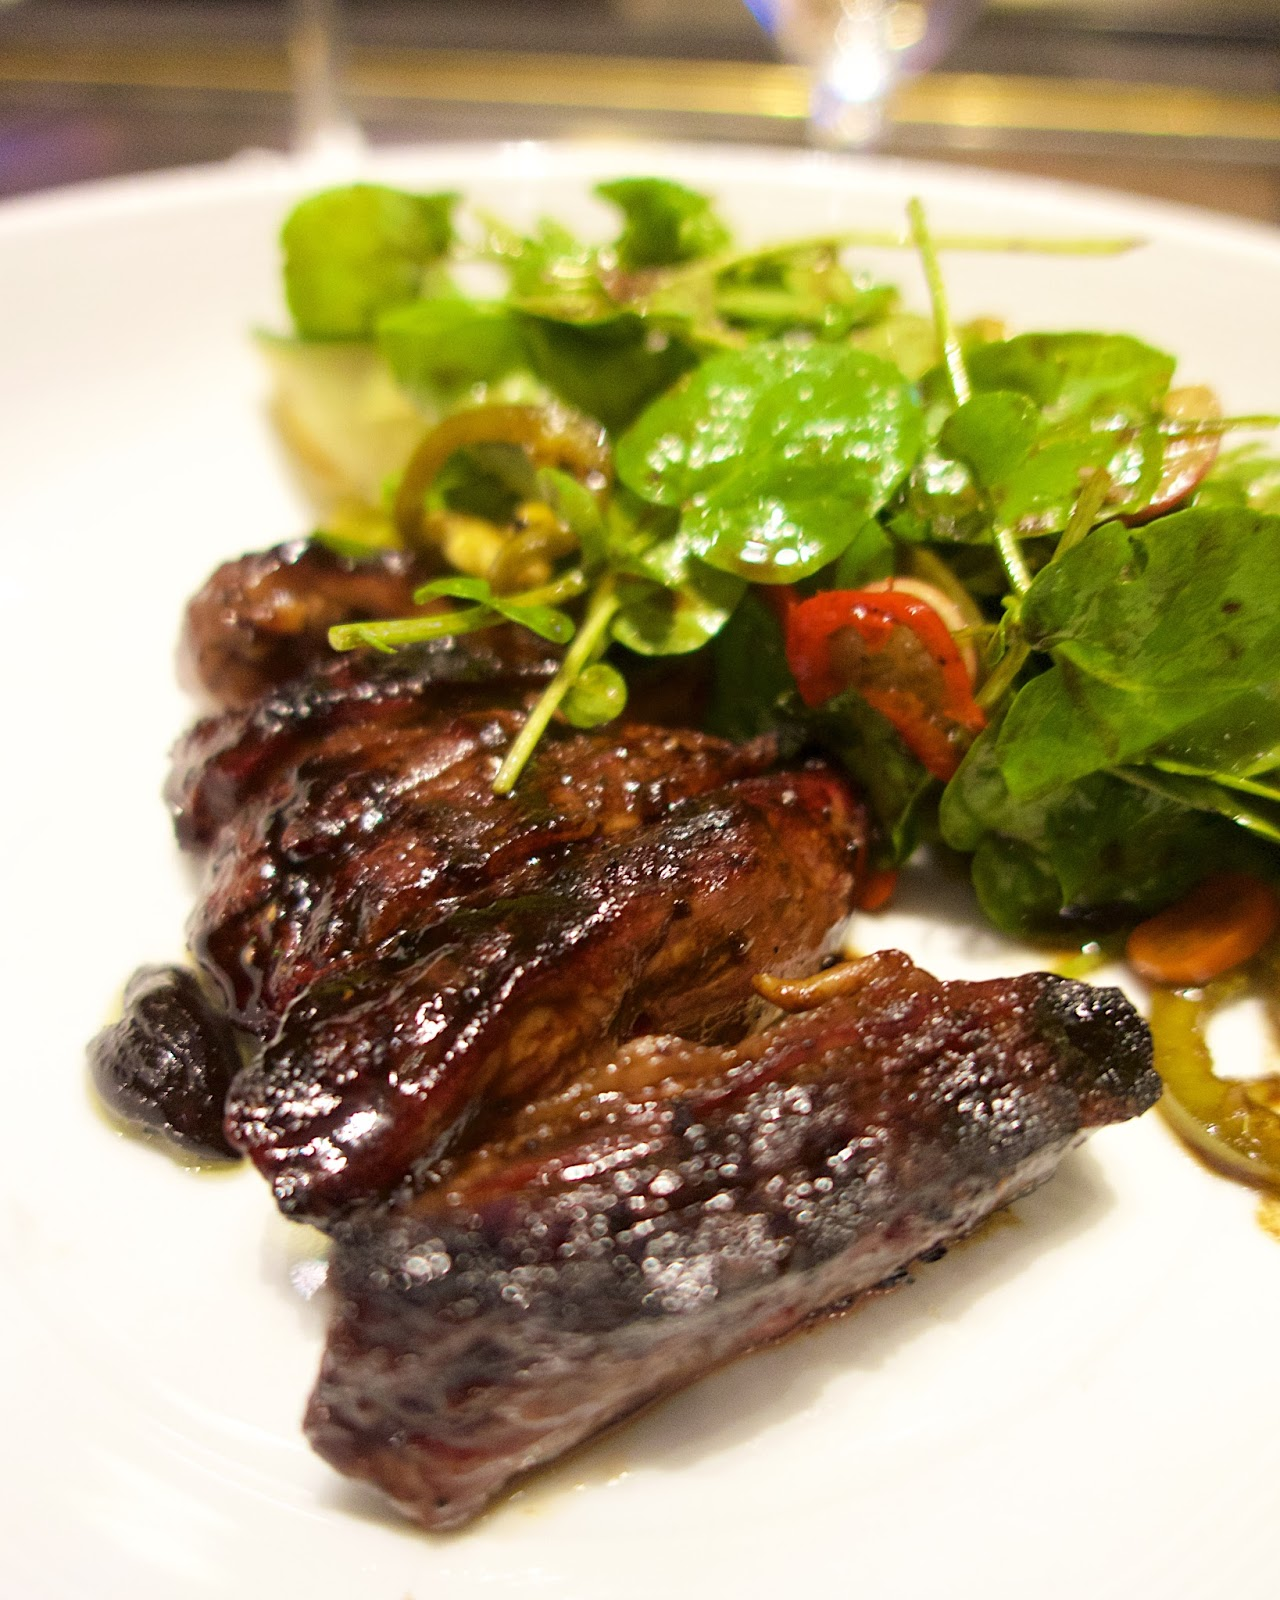 Tom Colicchio's Heritage Steak - soy-chili glazed skirt steak skewers